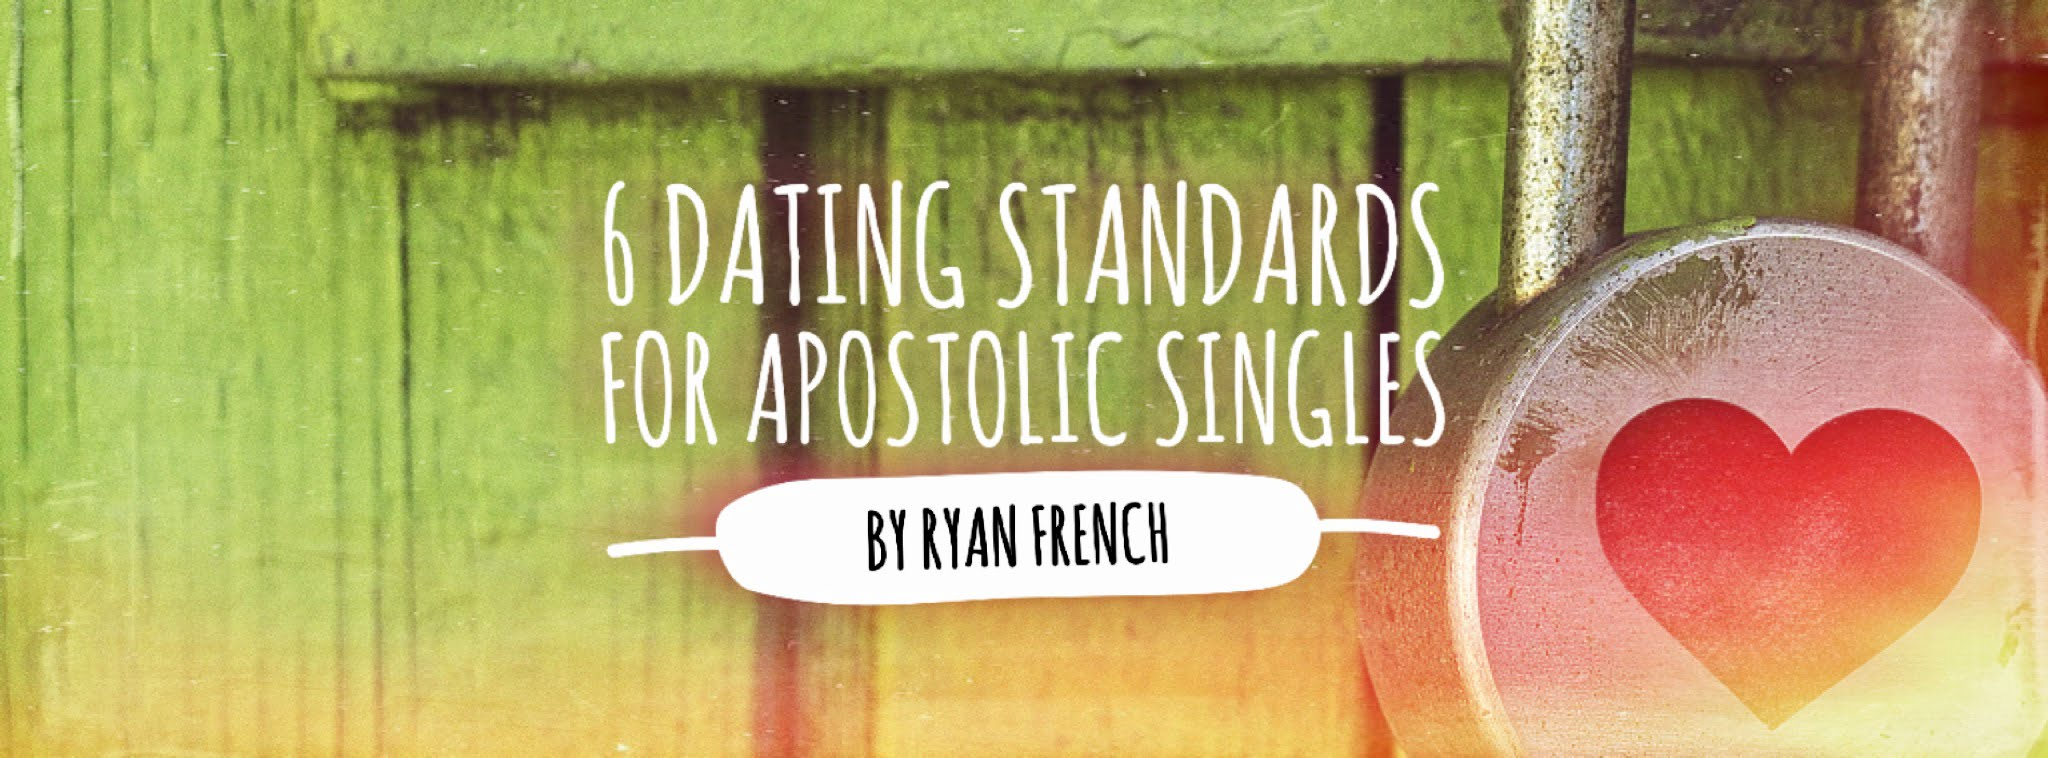 Christian dating vs hanging out